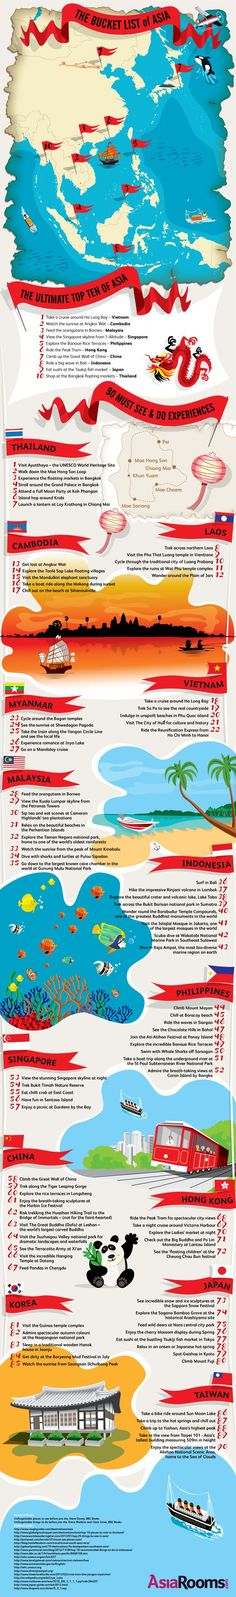 ⭐️ The Bucket List of Asia features 90 must see and do experiences for travellers visiting the popular destination for backpackers and gap year traveler. http://visual.ly/bucket-list-asia